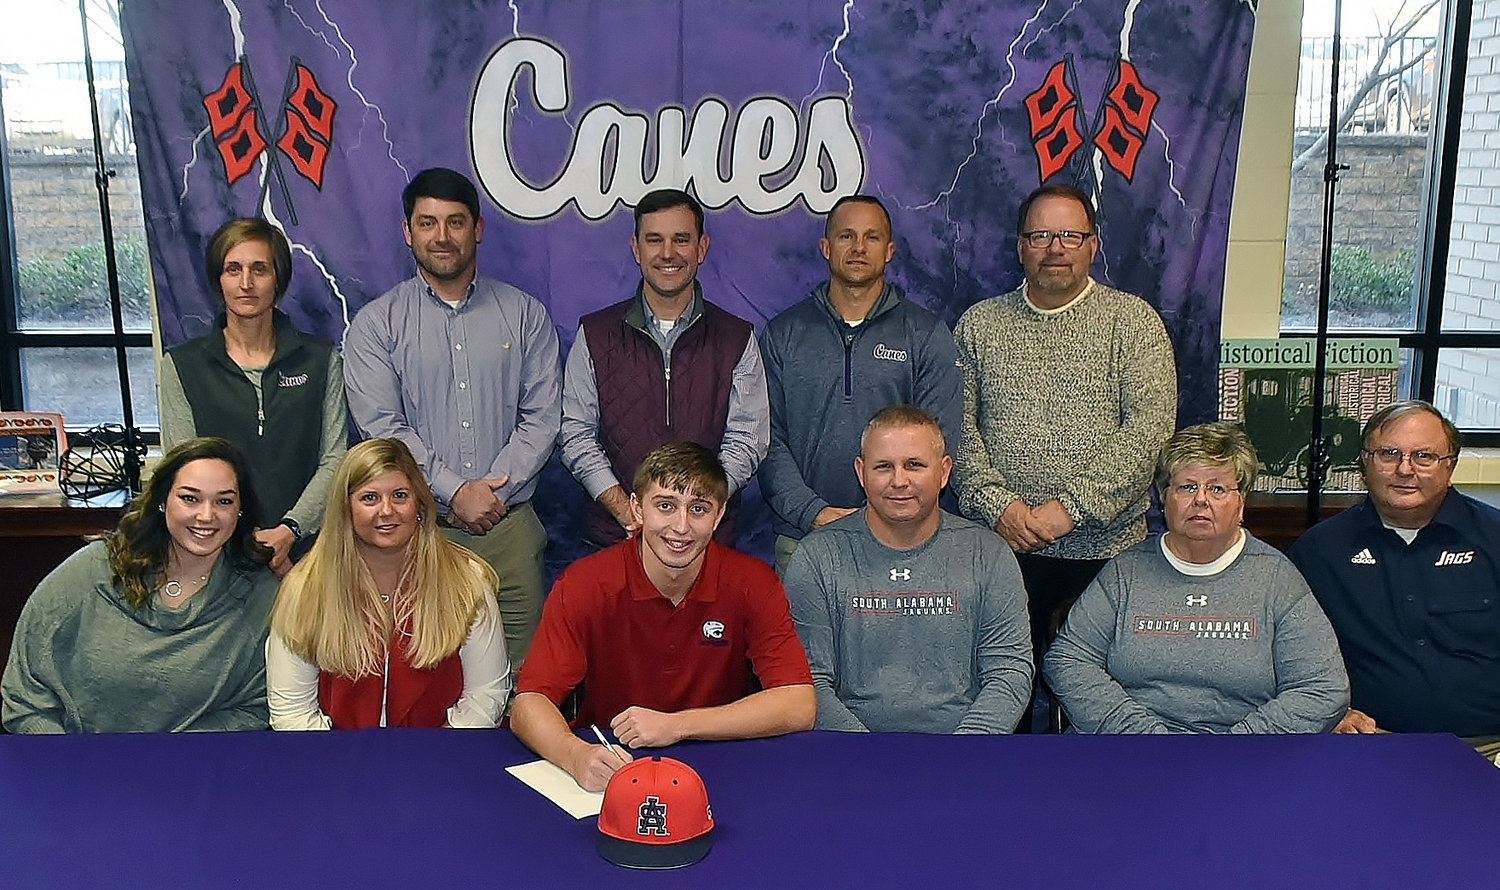 On Wednesday, Cartersville High senior Preston Welchel celebrated the signing of his national letter of intent to play baseball at South Alabama in Mobile. On hand to join him were, from left, front row: Sidney Welchel, cousin; Monika Welchel, mother; Jarrod Welchel, father; Linda Nelson, grandmother; Mitchell Nelson, grandfather; back row, Shelley Tierce, CHS principal; Brandon Patch, CHS assistant baseball coach; Kyle Tucker, CHS head baseball coach; Corey Gochee, CHS assistant baseball coach; and Darrell Demastus, CHS athletic director.